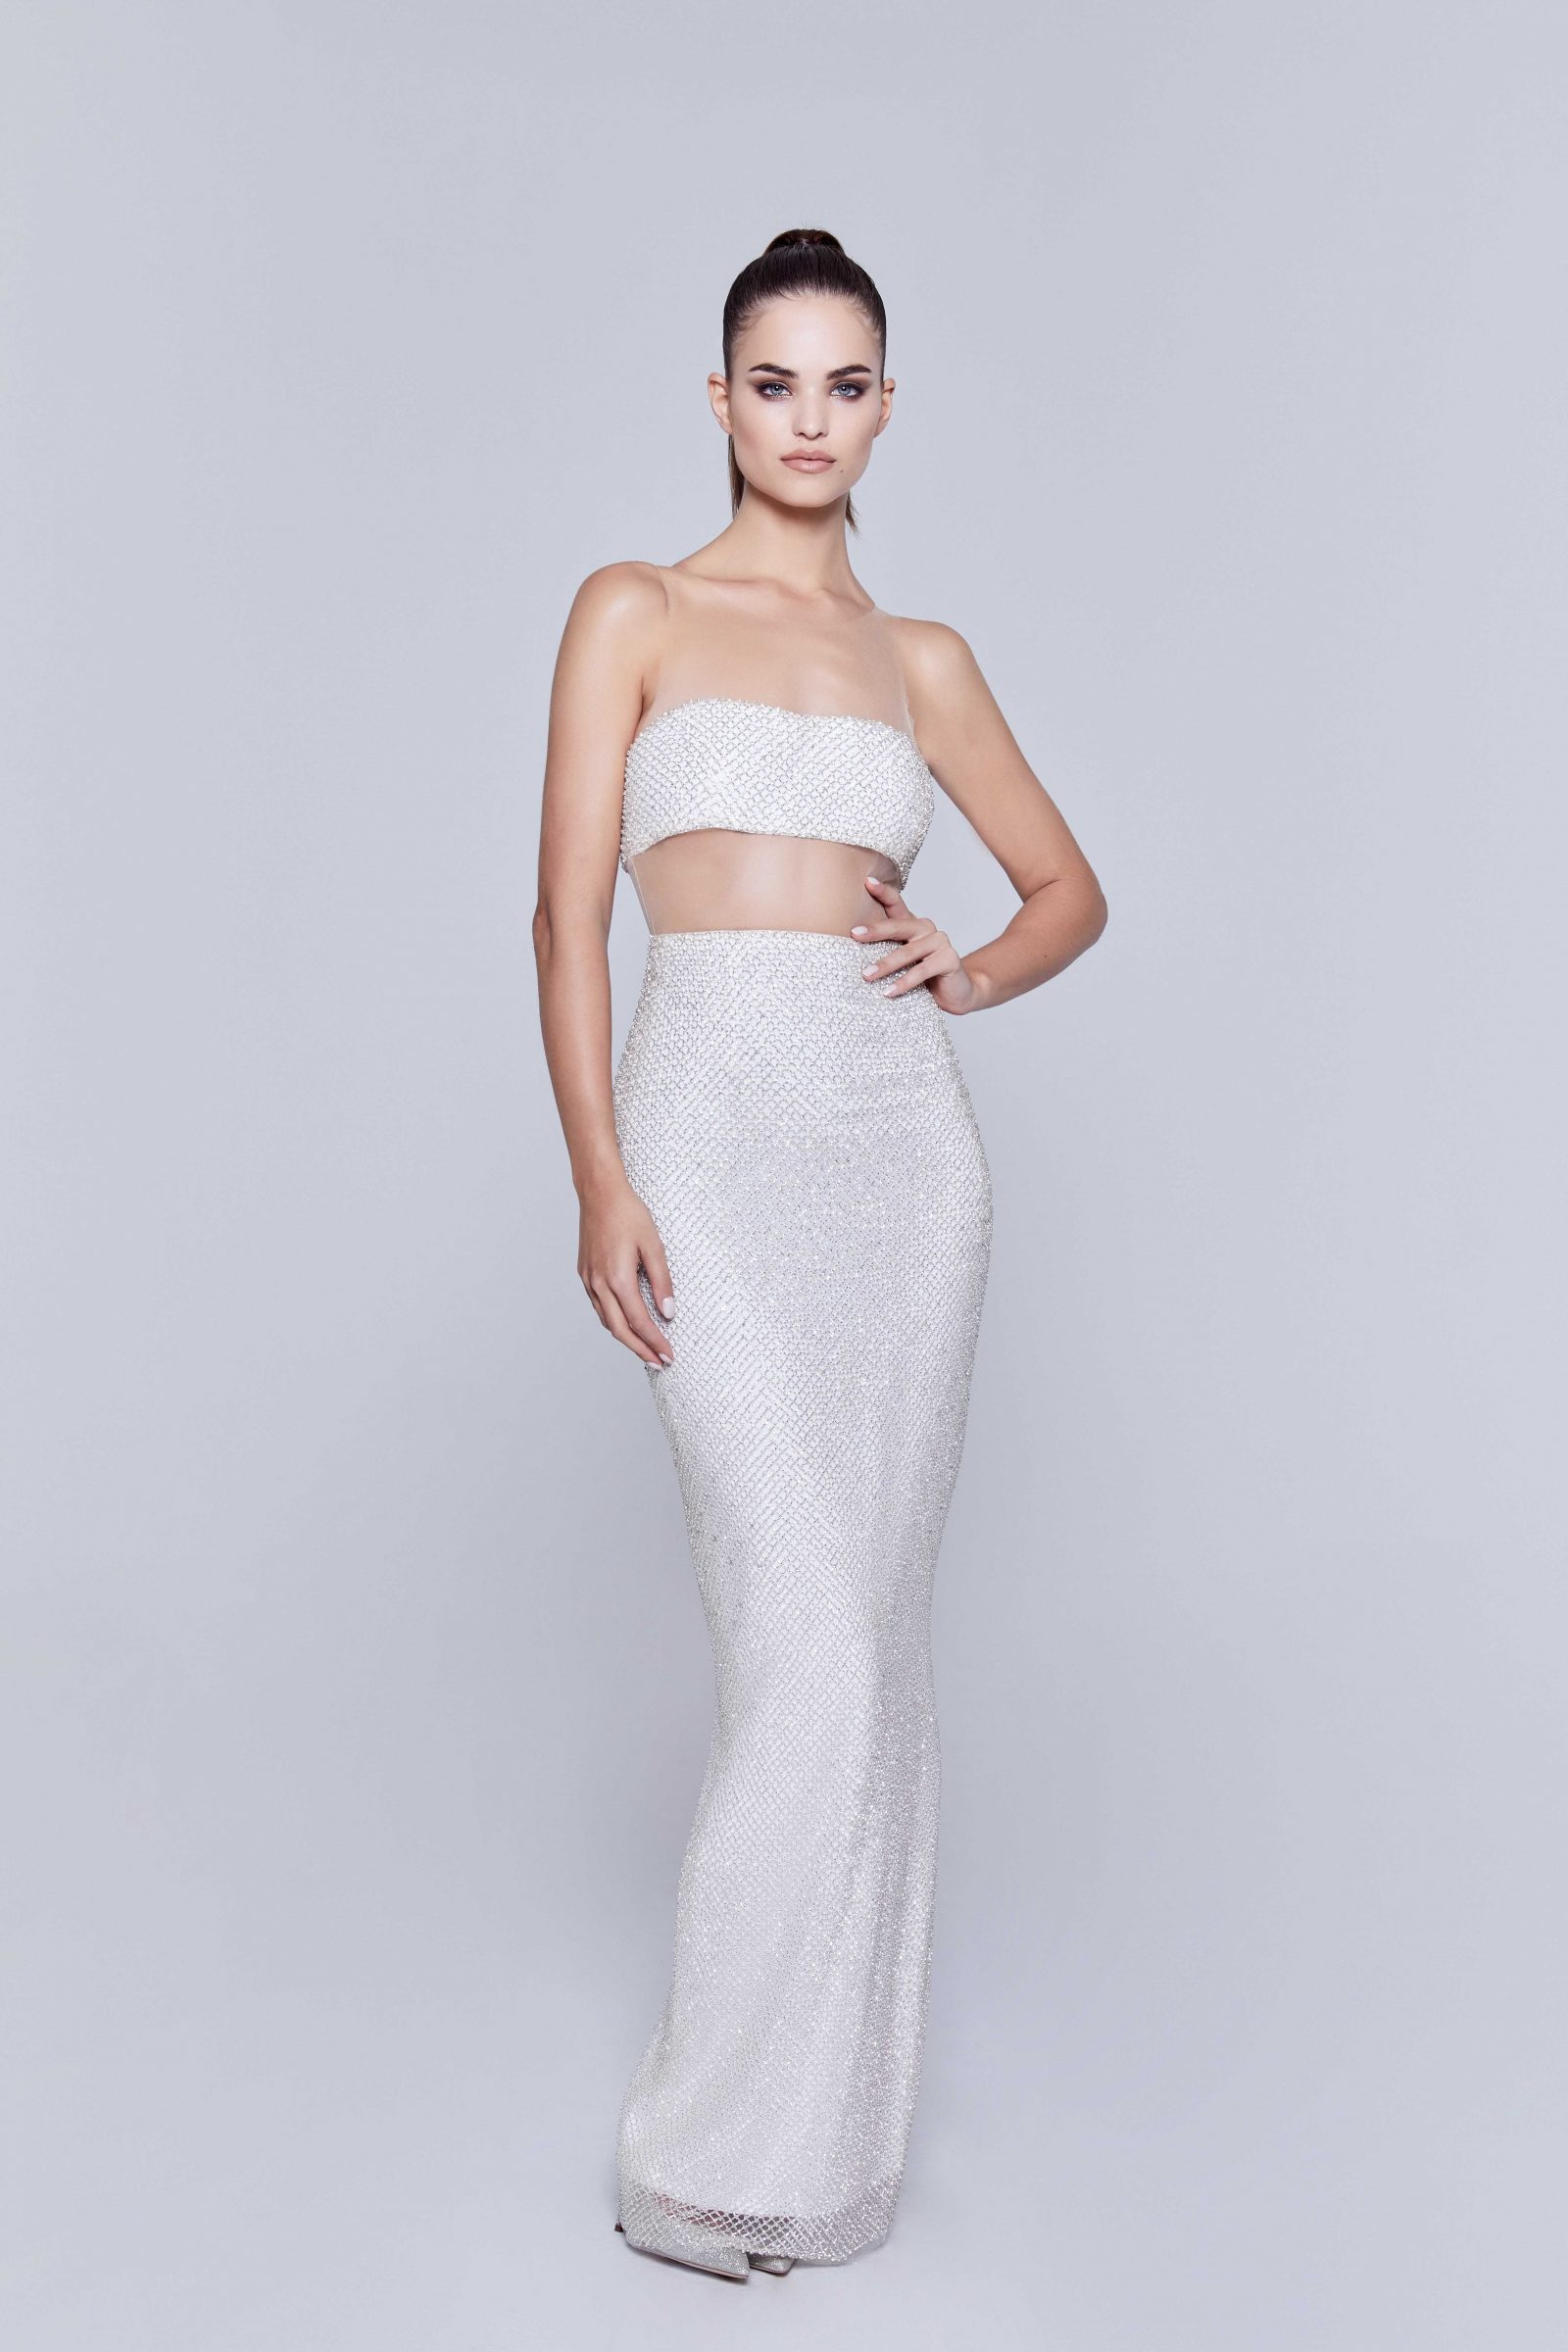 Two-piece bridal look with strapless top and a-line skirt